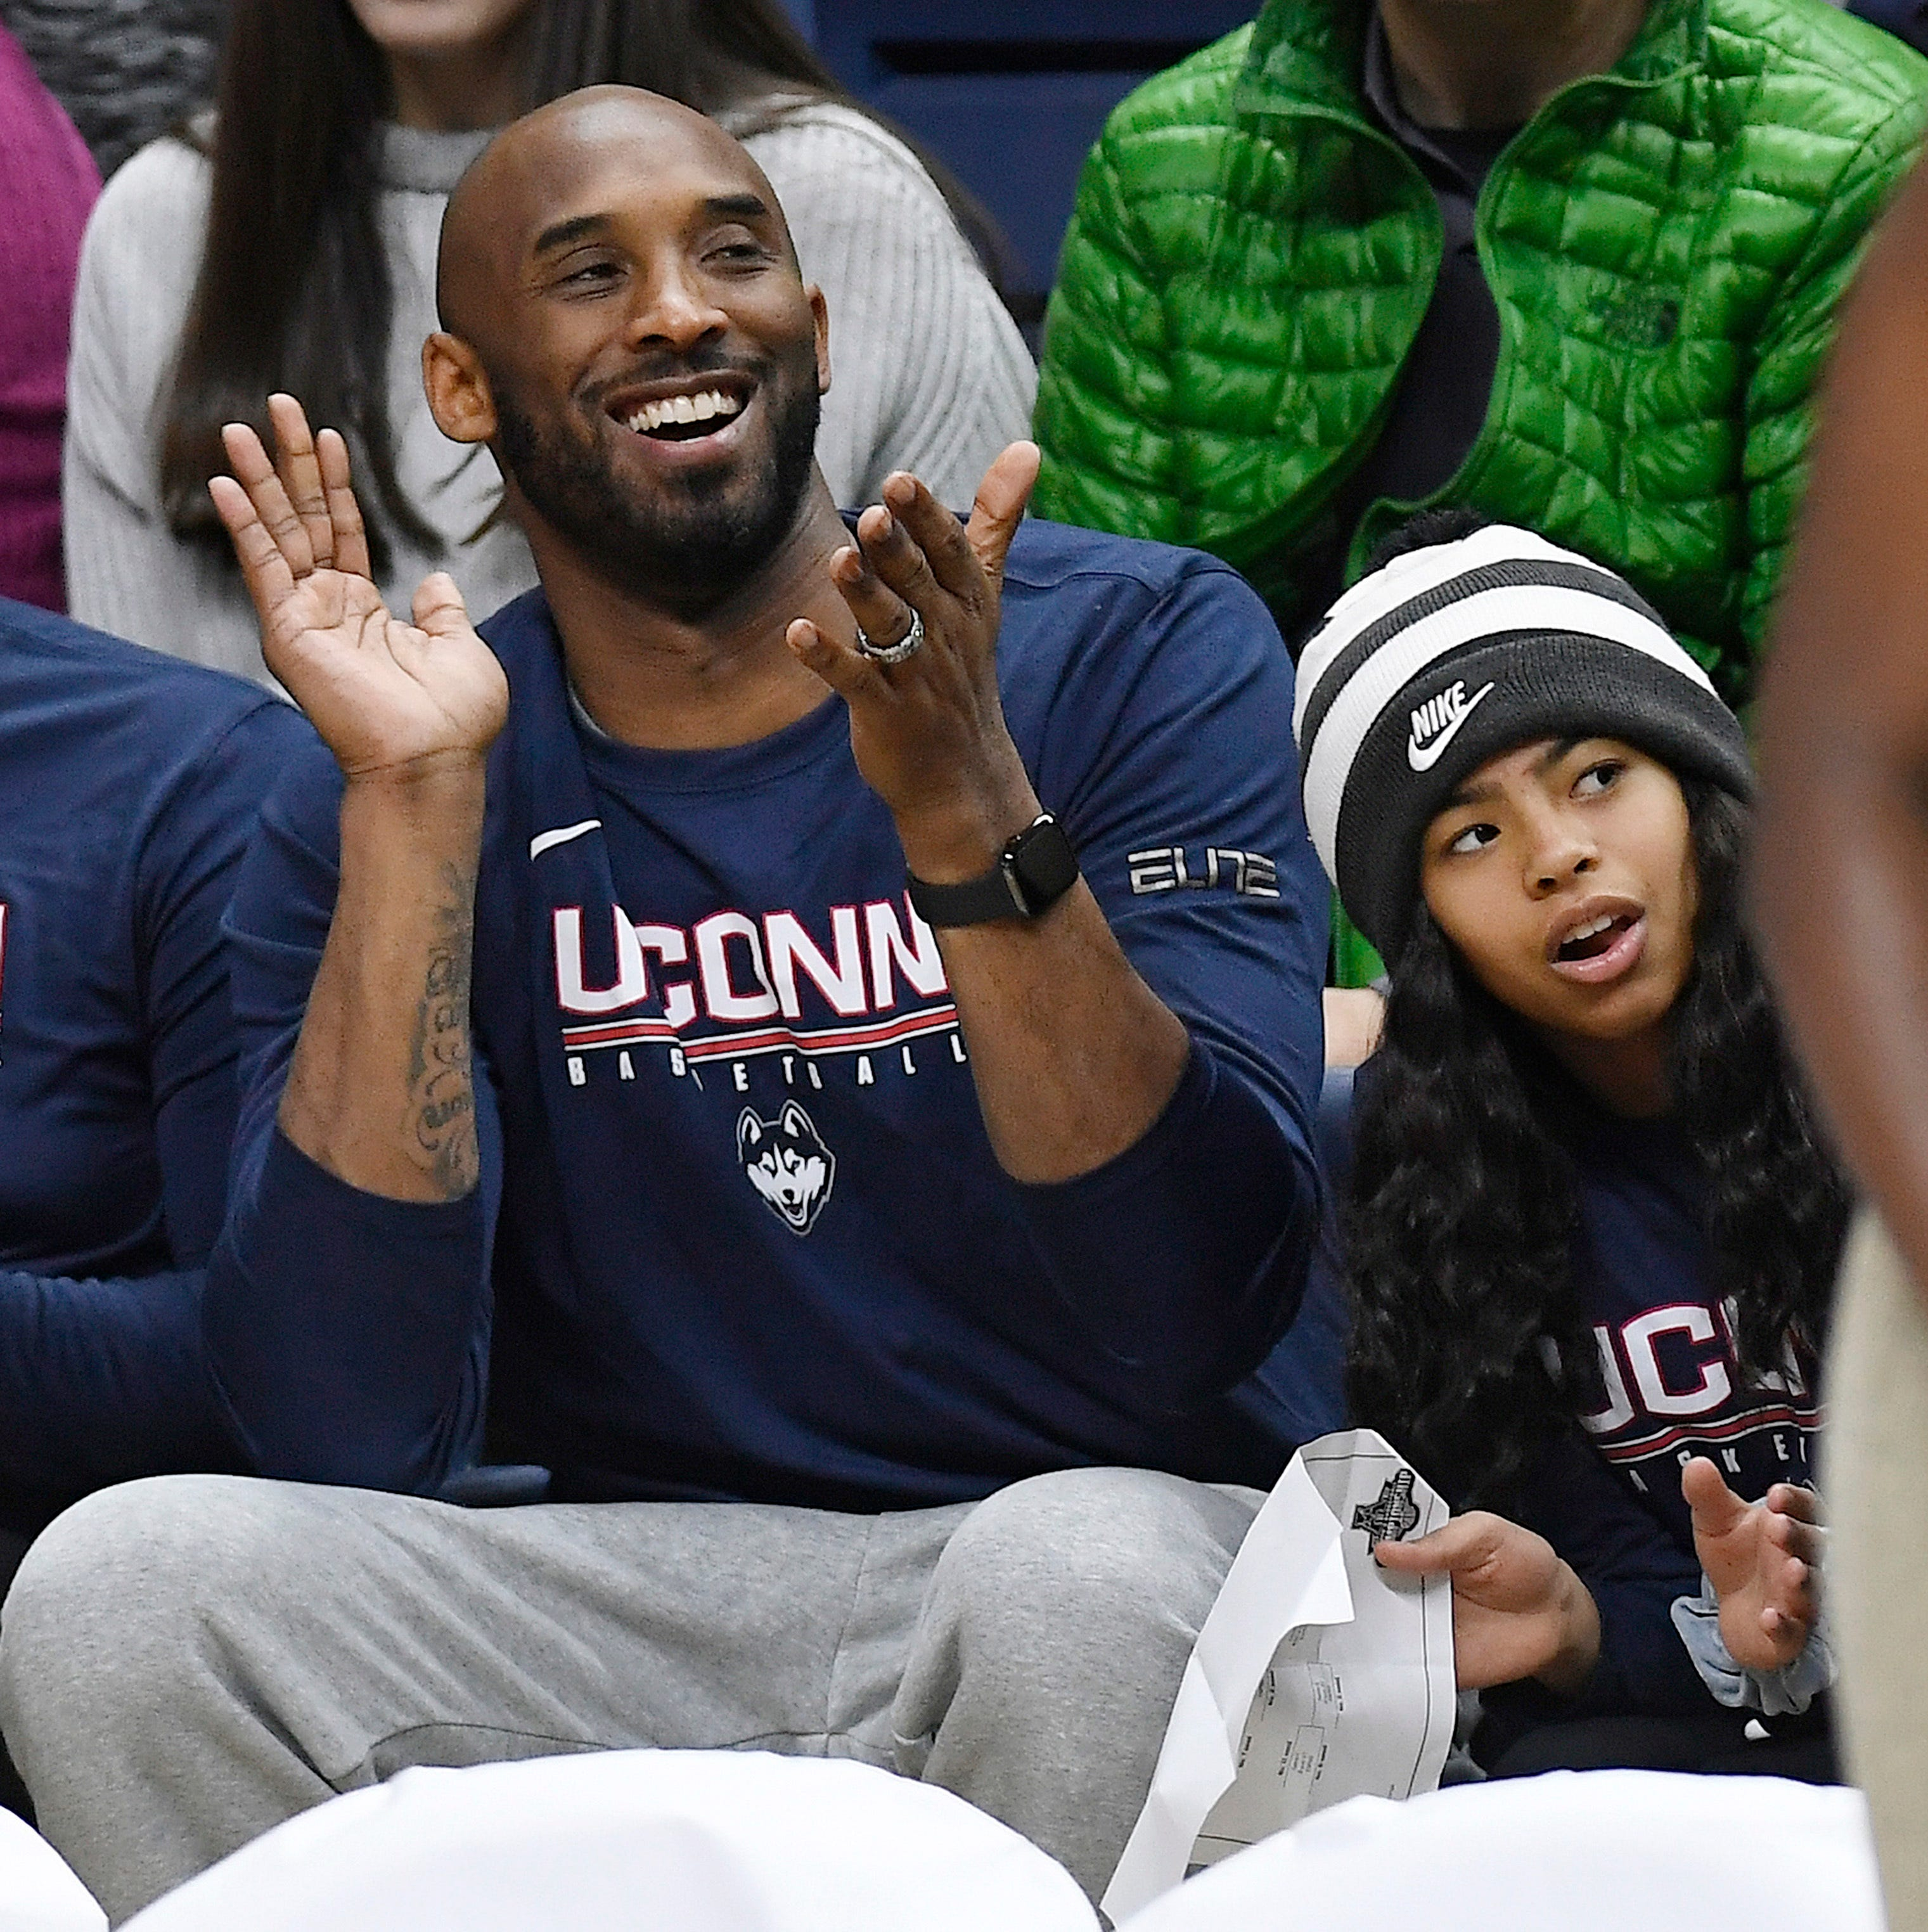 Opinion: Image of Kobe Bryant with daughter Gianna shows he had moved on to another dream